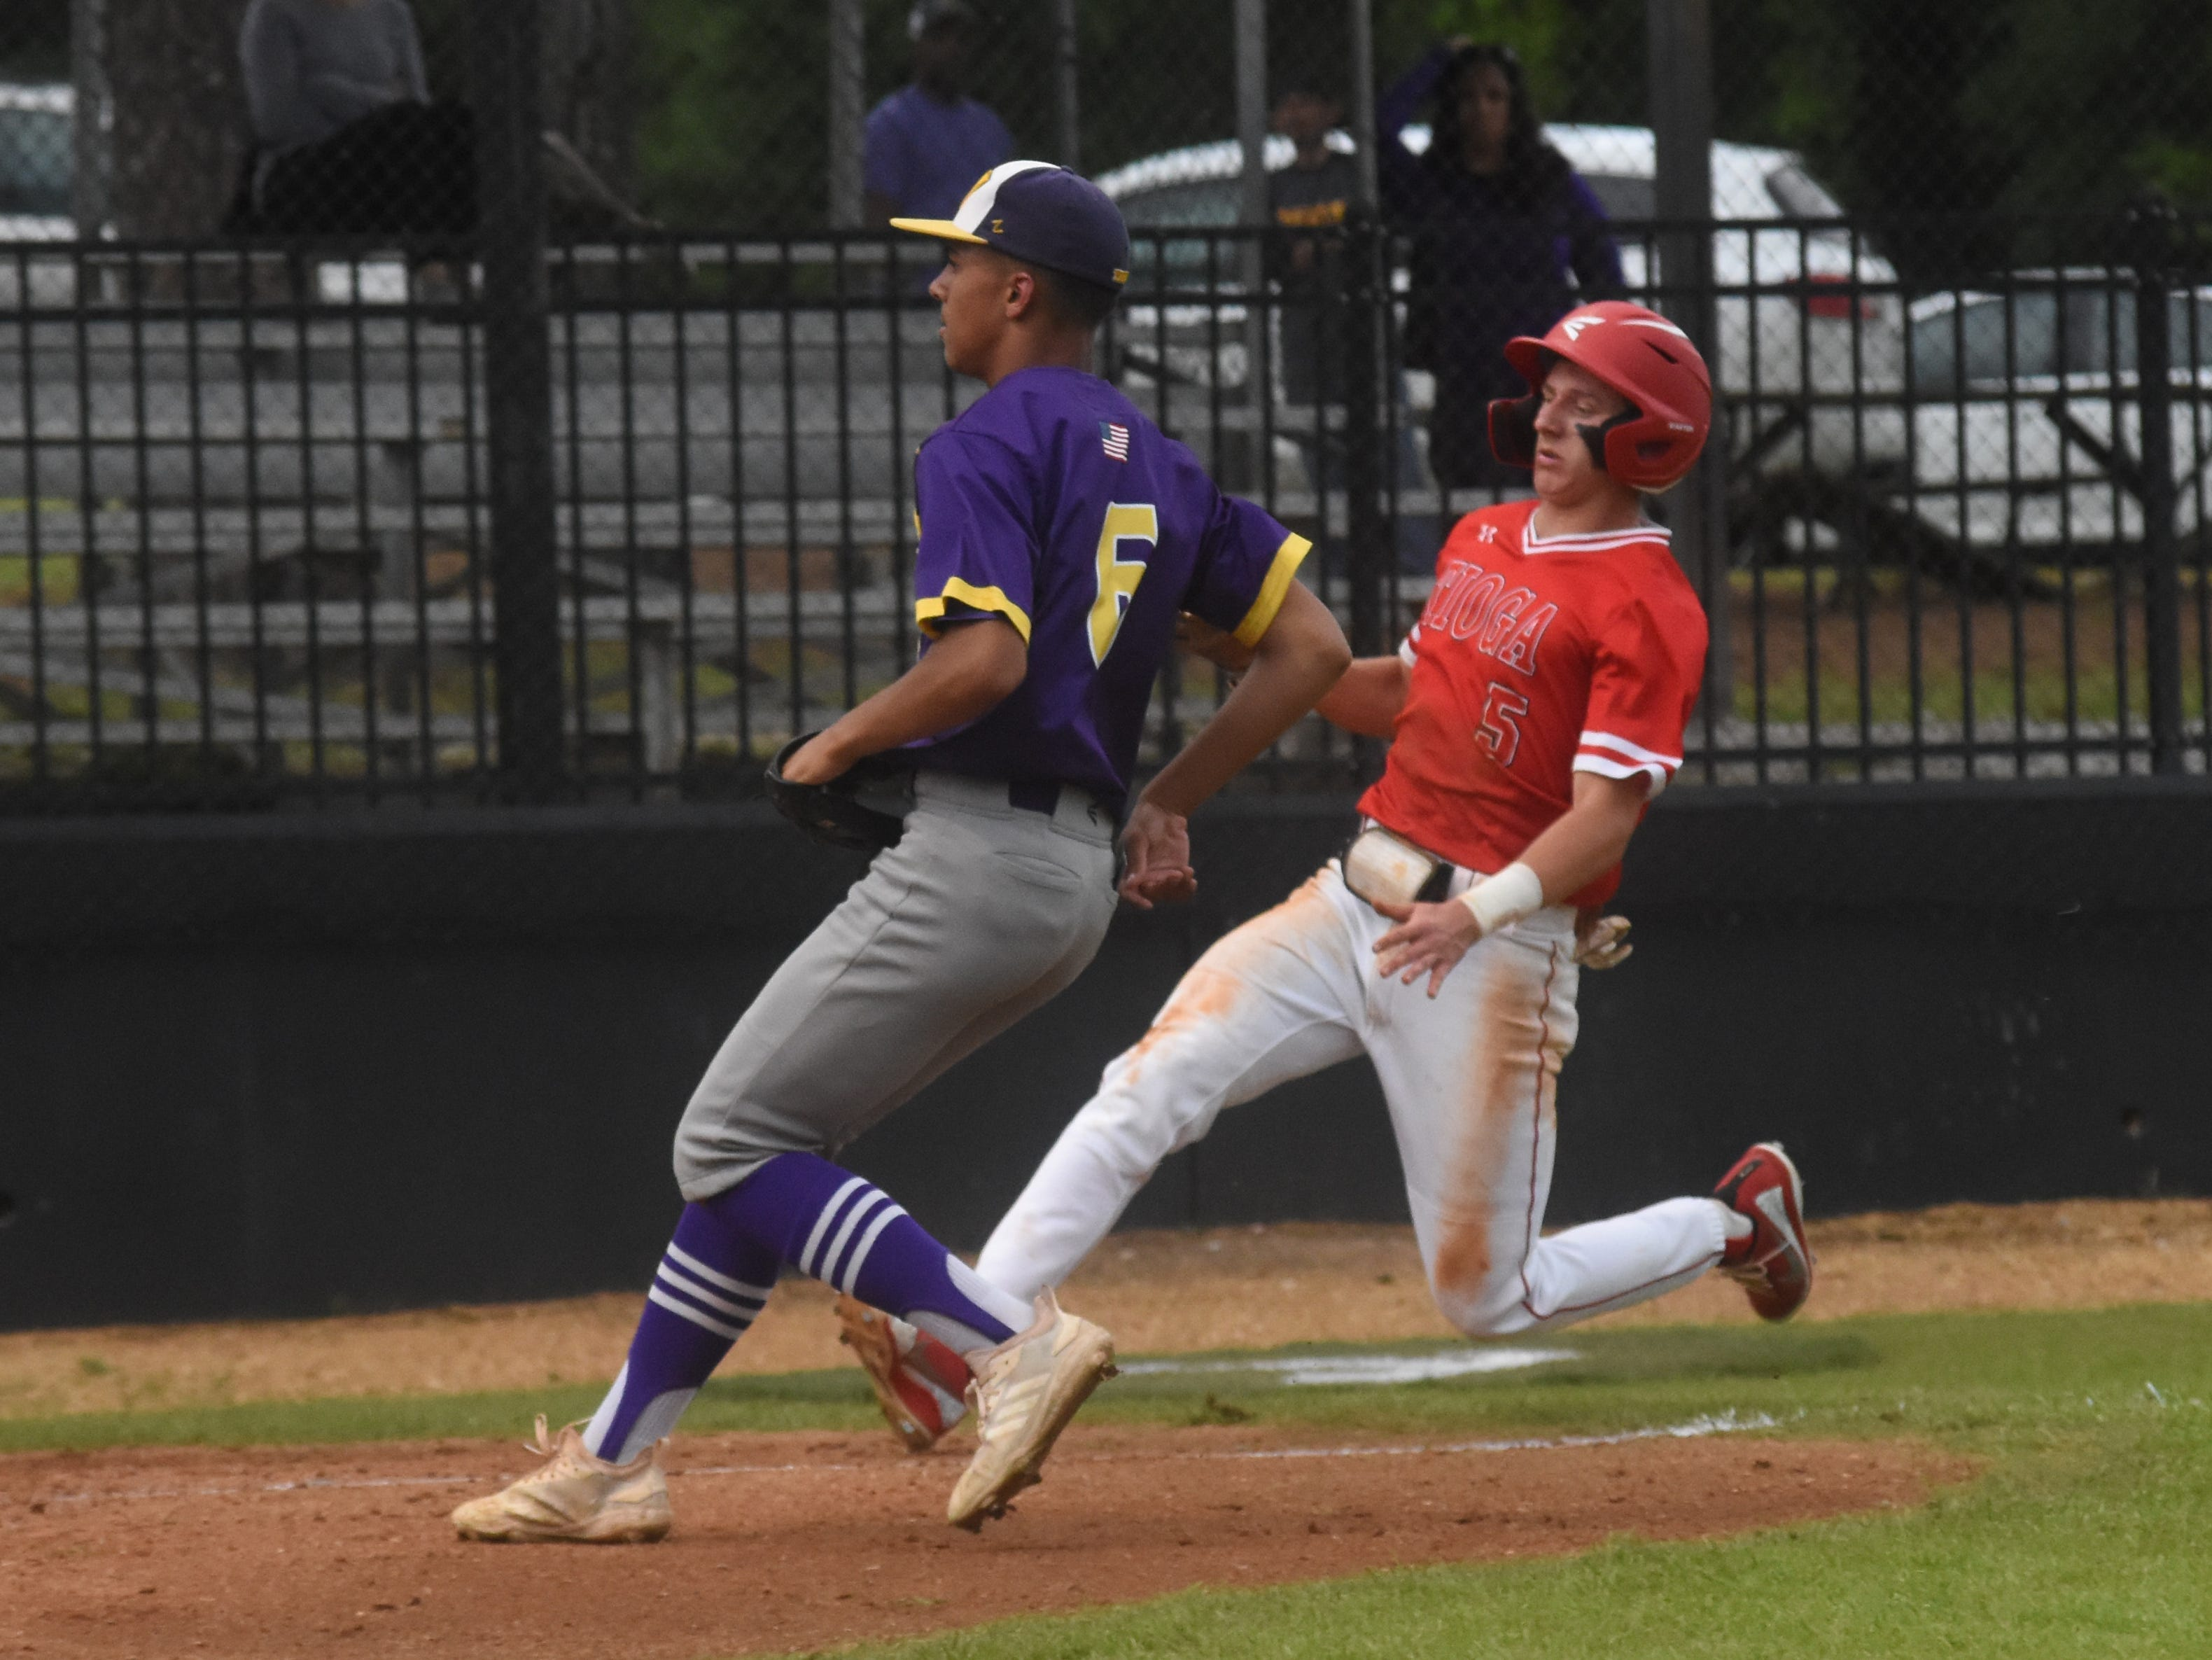 Tioga High School vs. Westgate High School Tuesday, April 23, 2019 in the  2019 Allstate Sugar Bowl/LHSAA Baseball State Tournament Class 4A playoff game. Tioga won 10-0.